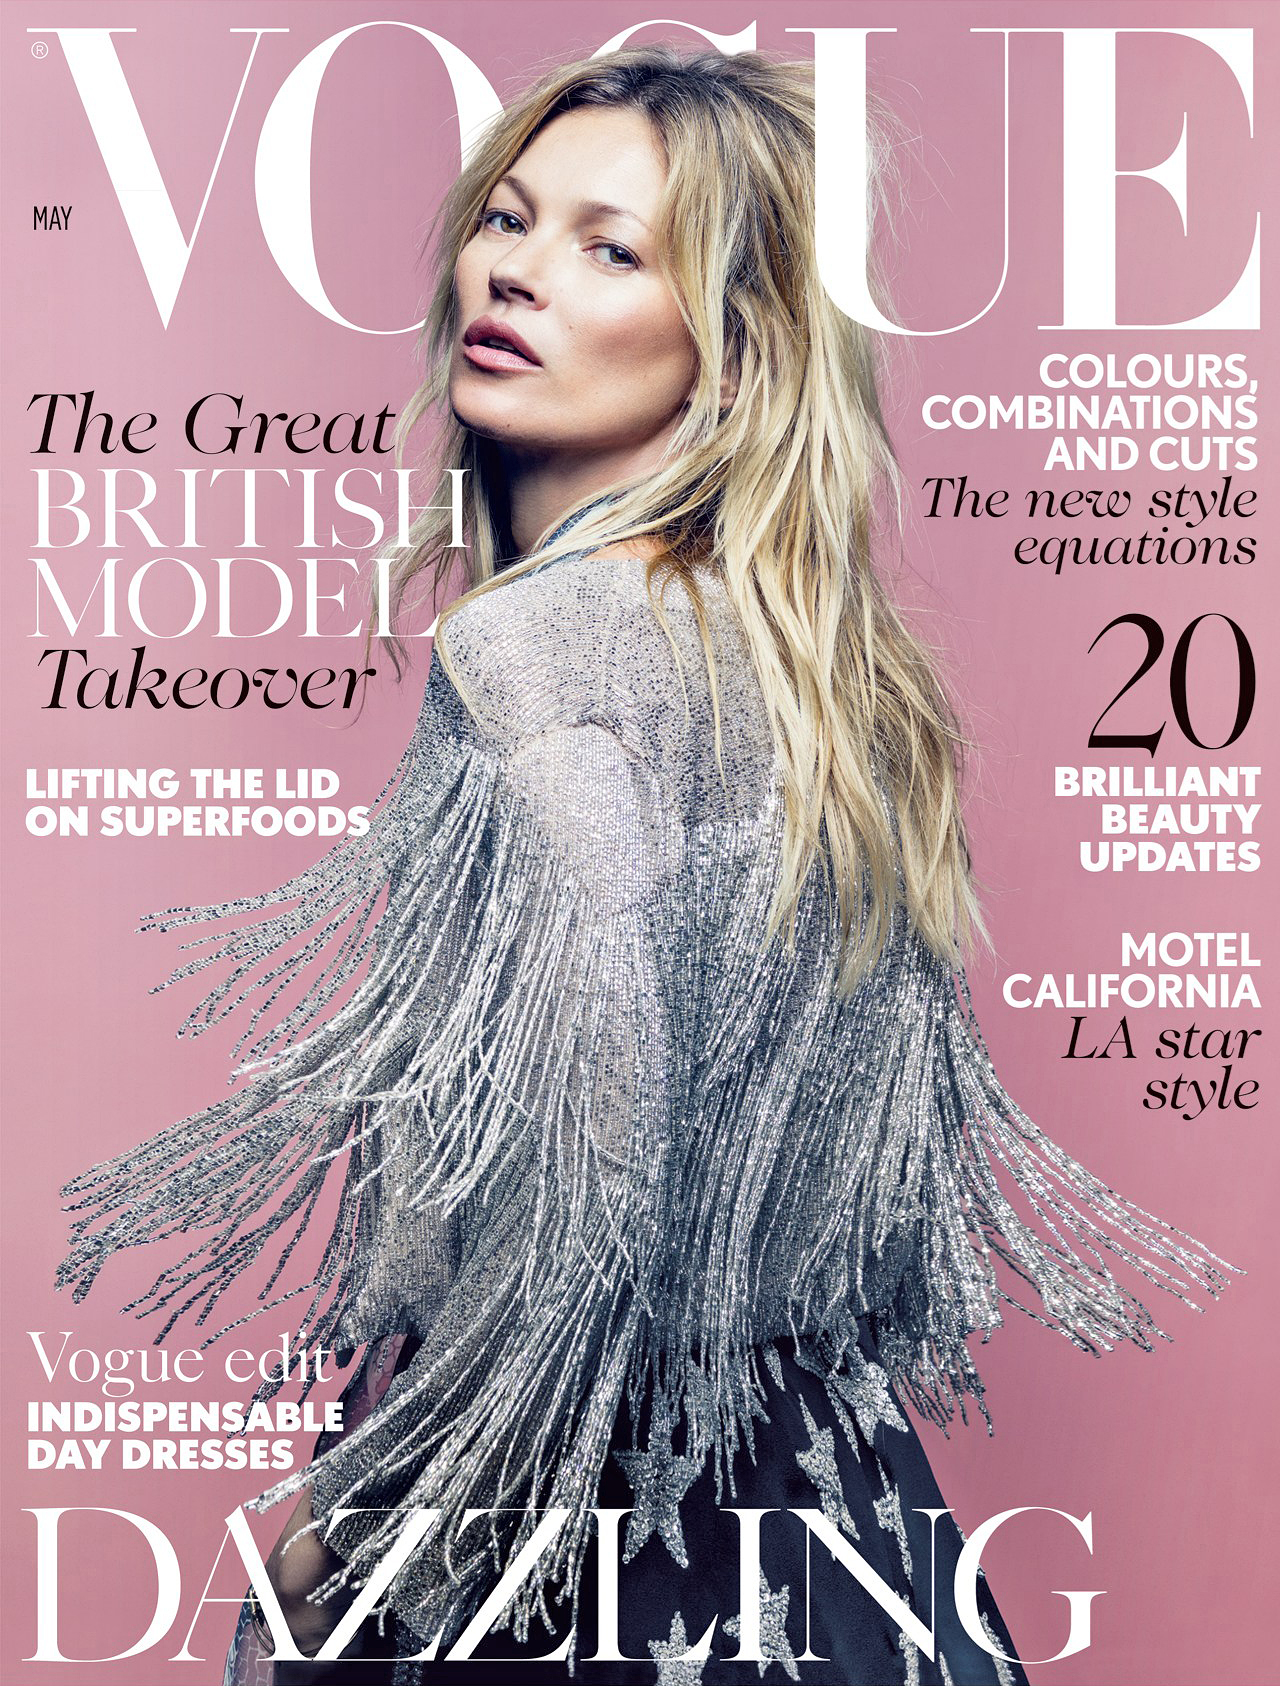 kate-moss-by-craig-mcdean-for-vogue-uk-may-2014